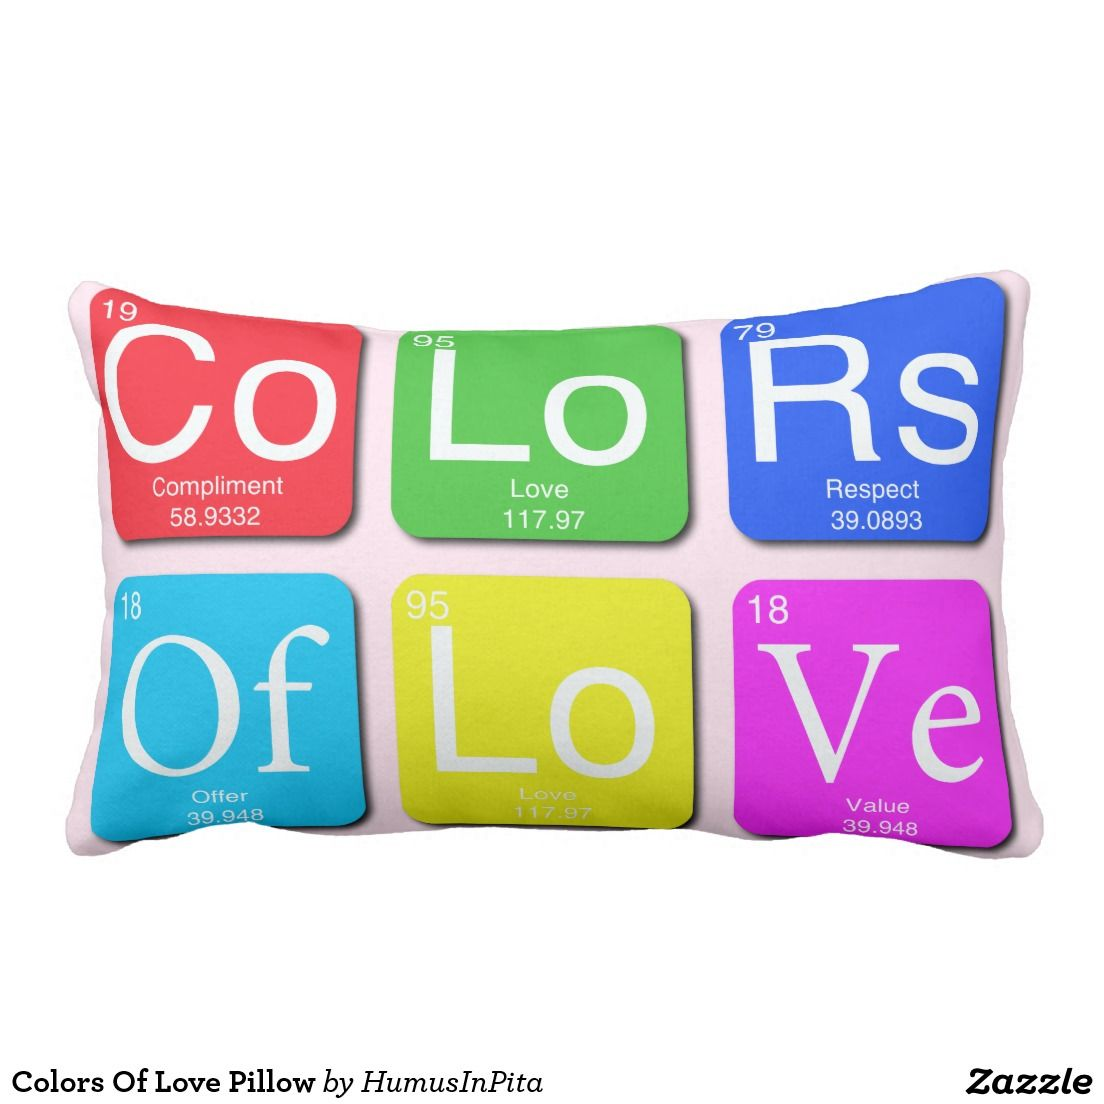 Colors Of Love Pillow